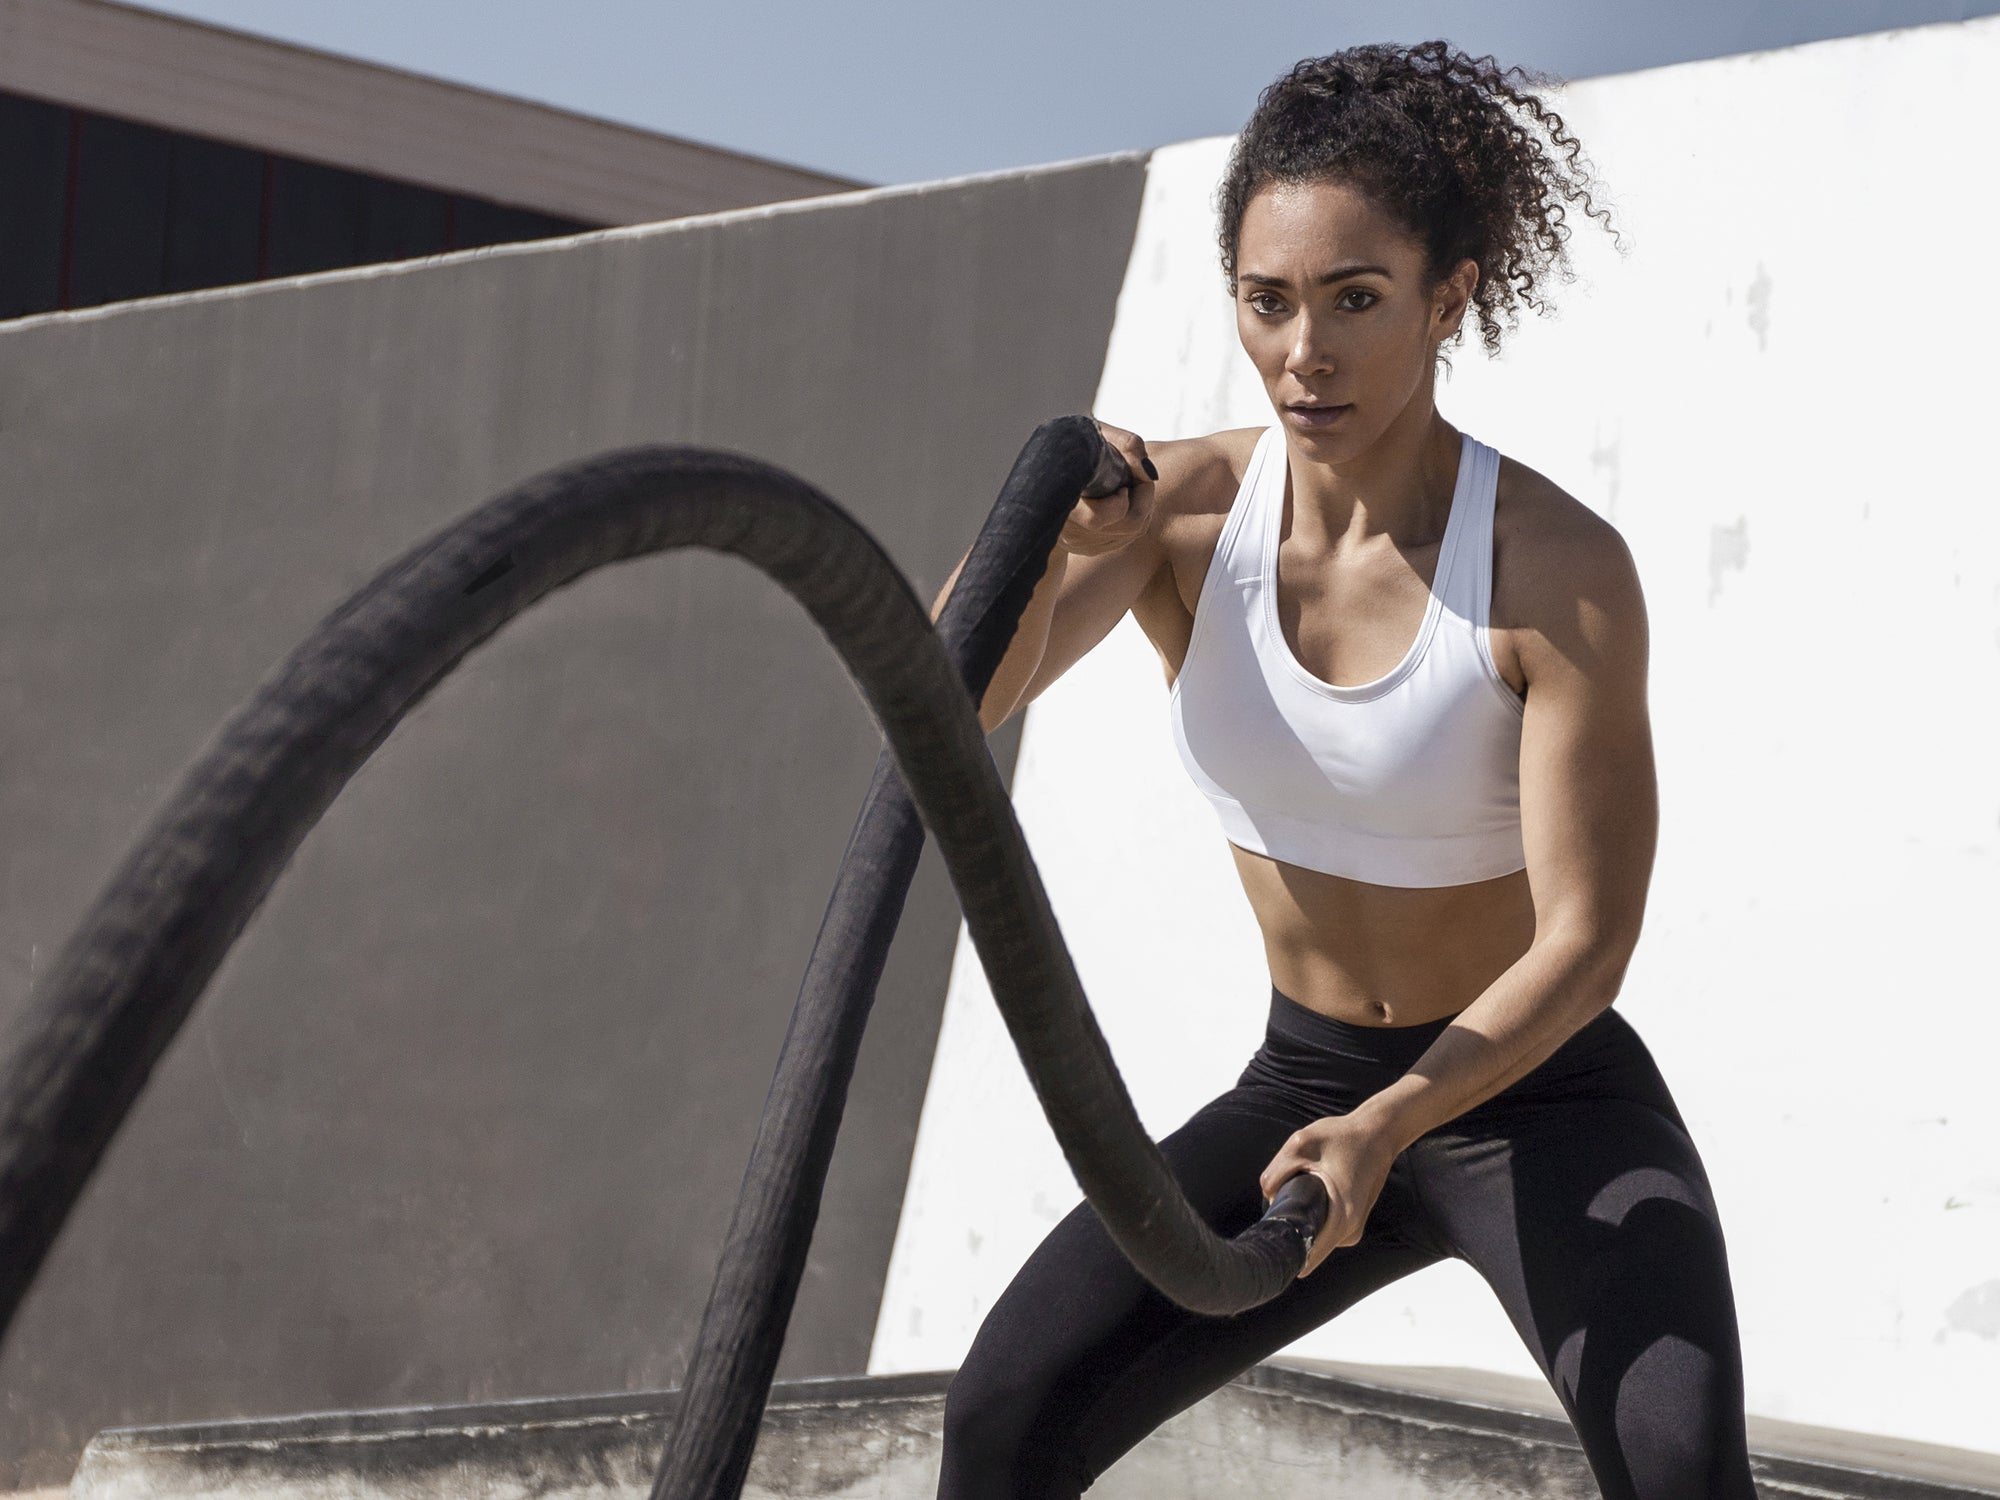 woman upper body workout with battle ropes